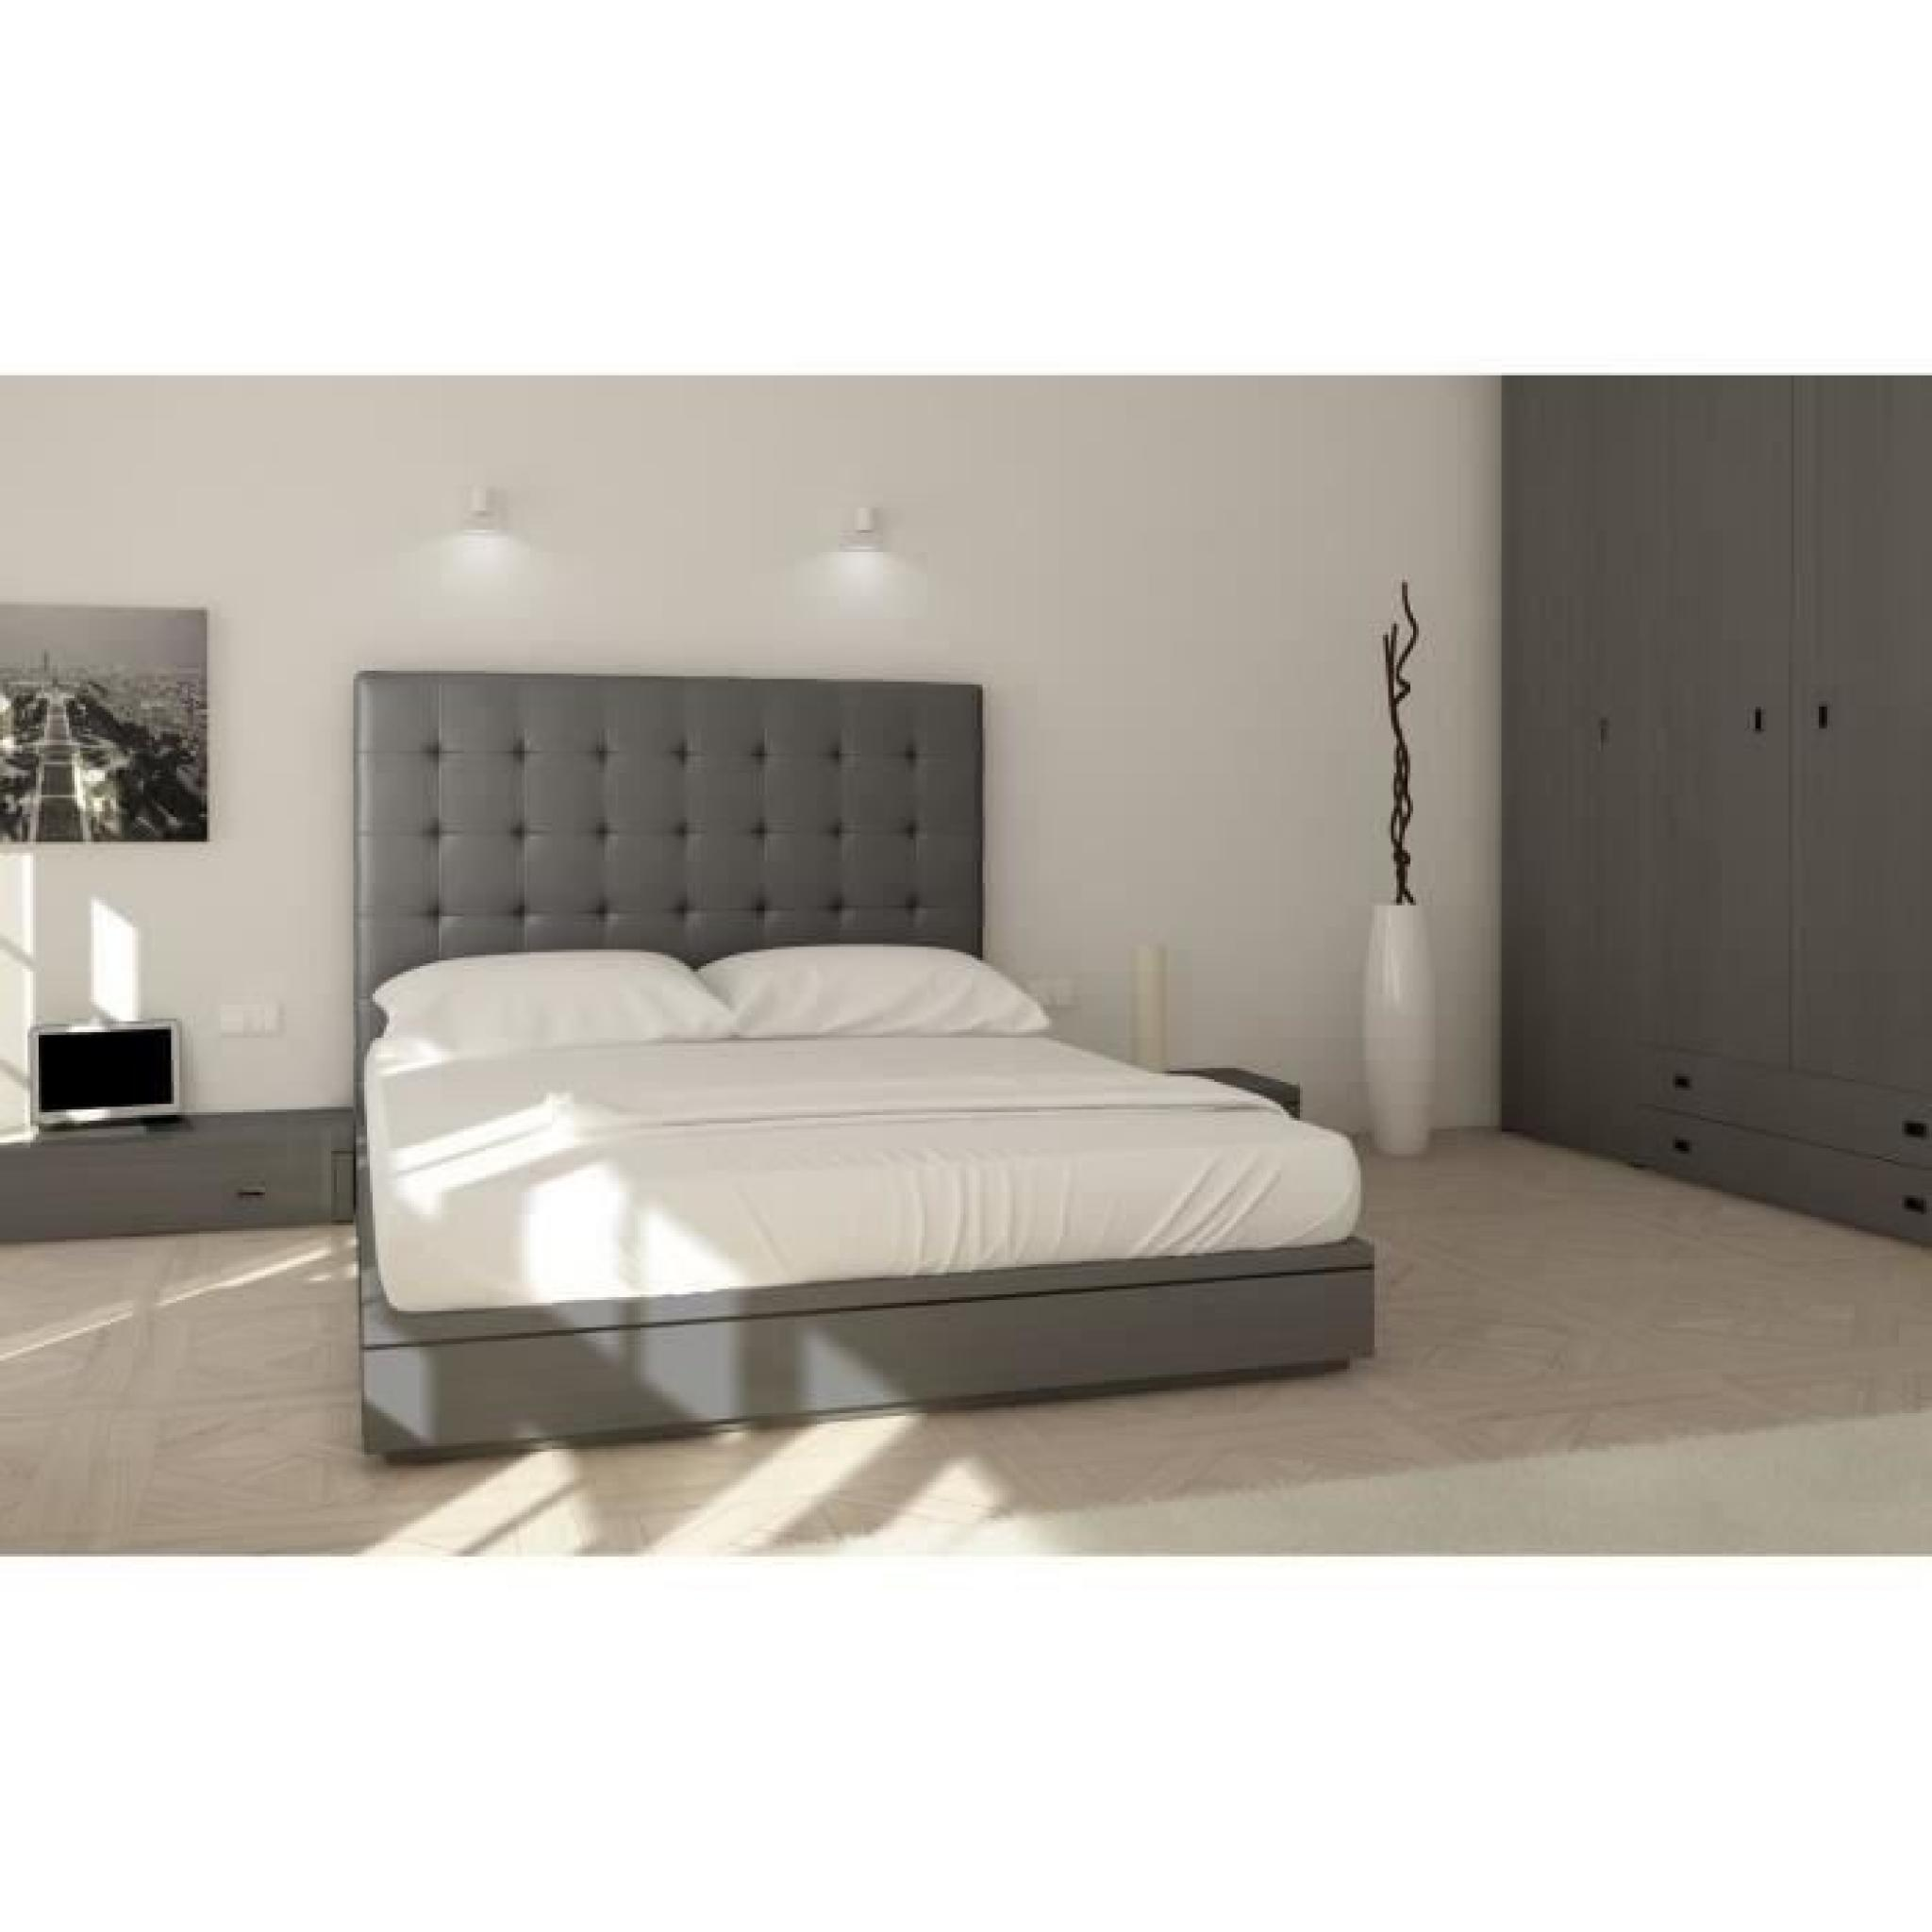 sogno t te de lit capitonn e adulte 160cm pu achat vente tete de lit pas cher couleur et. Black Bedroom Furniture Sets. Home Design Ideas